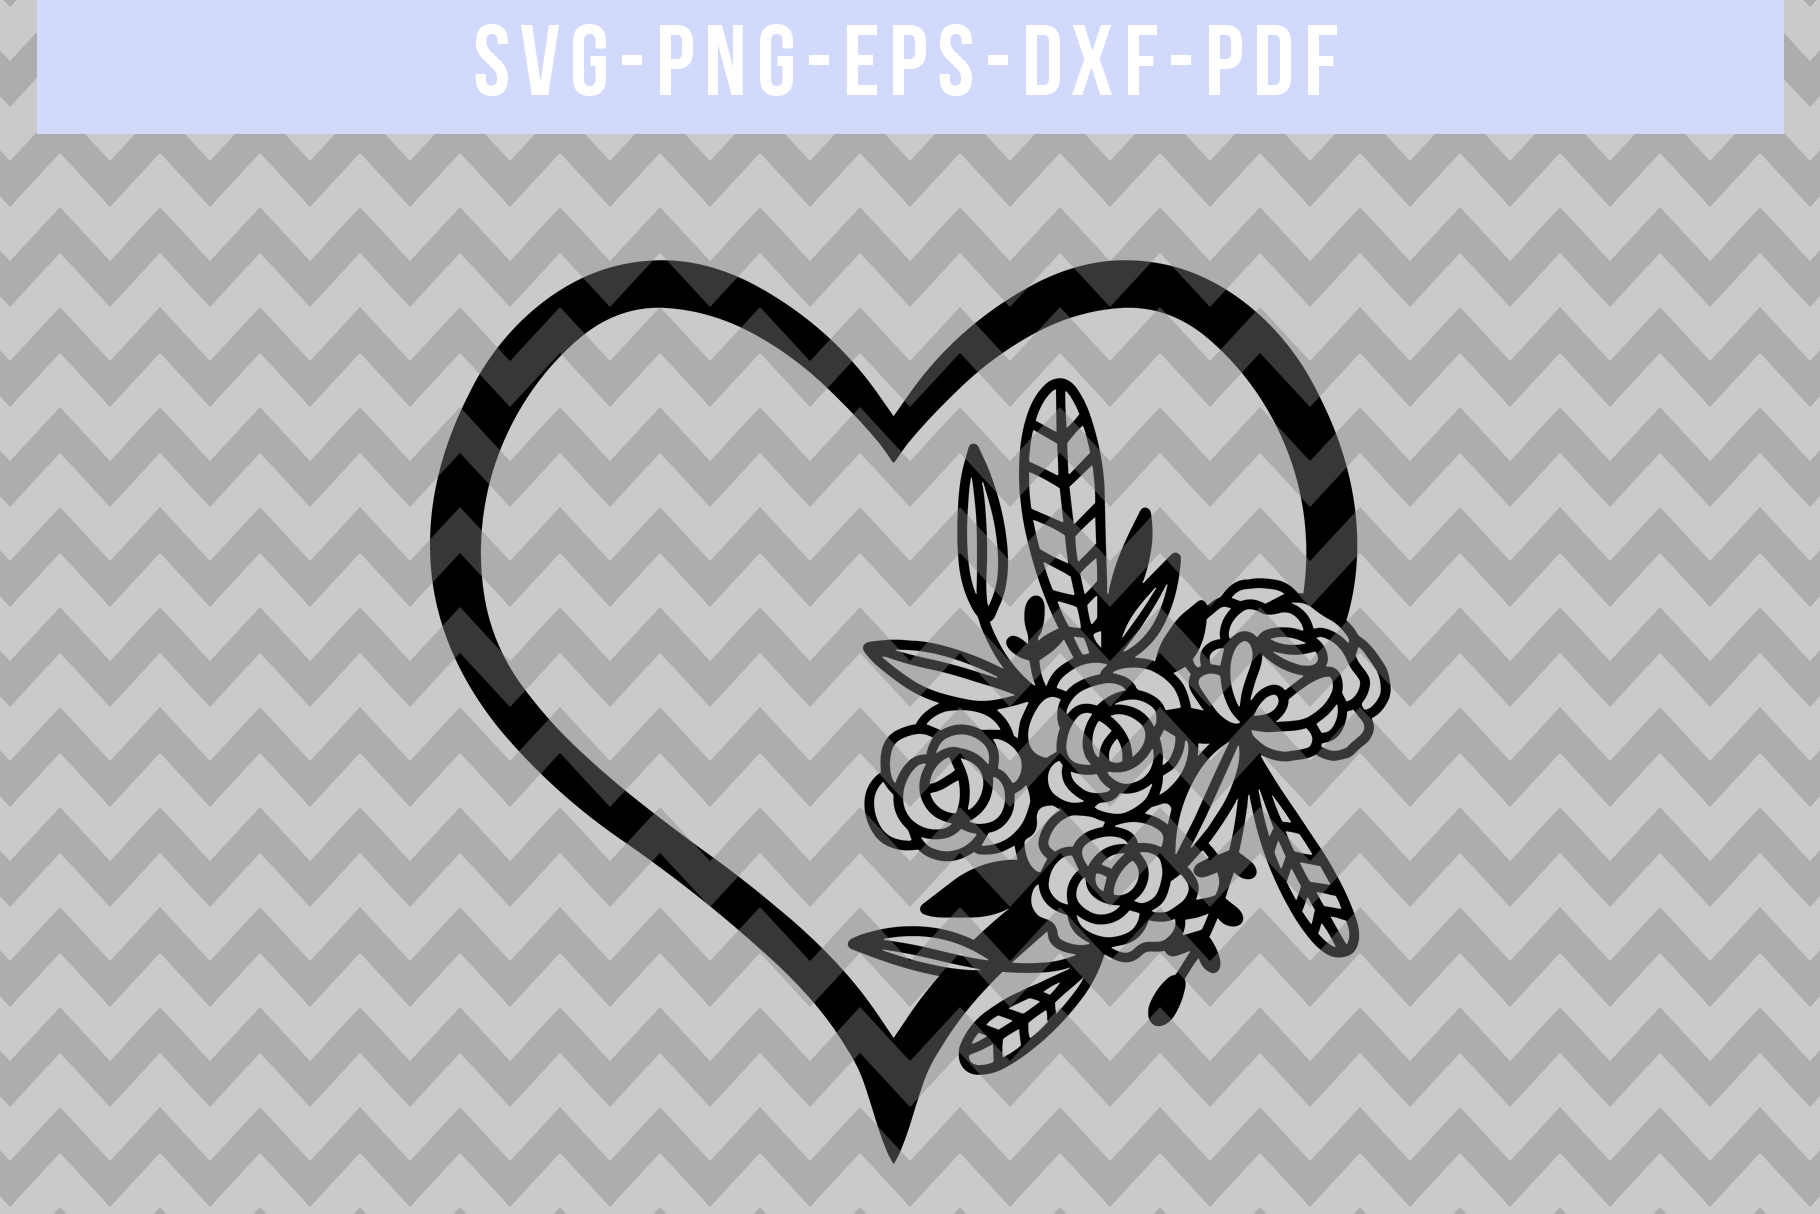 Floral Heart Papercut Template, Wedding Flower Scrapbook SVG example image 4